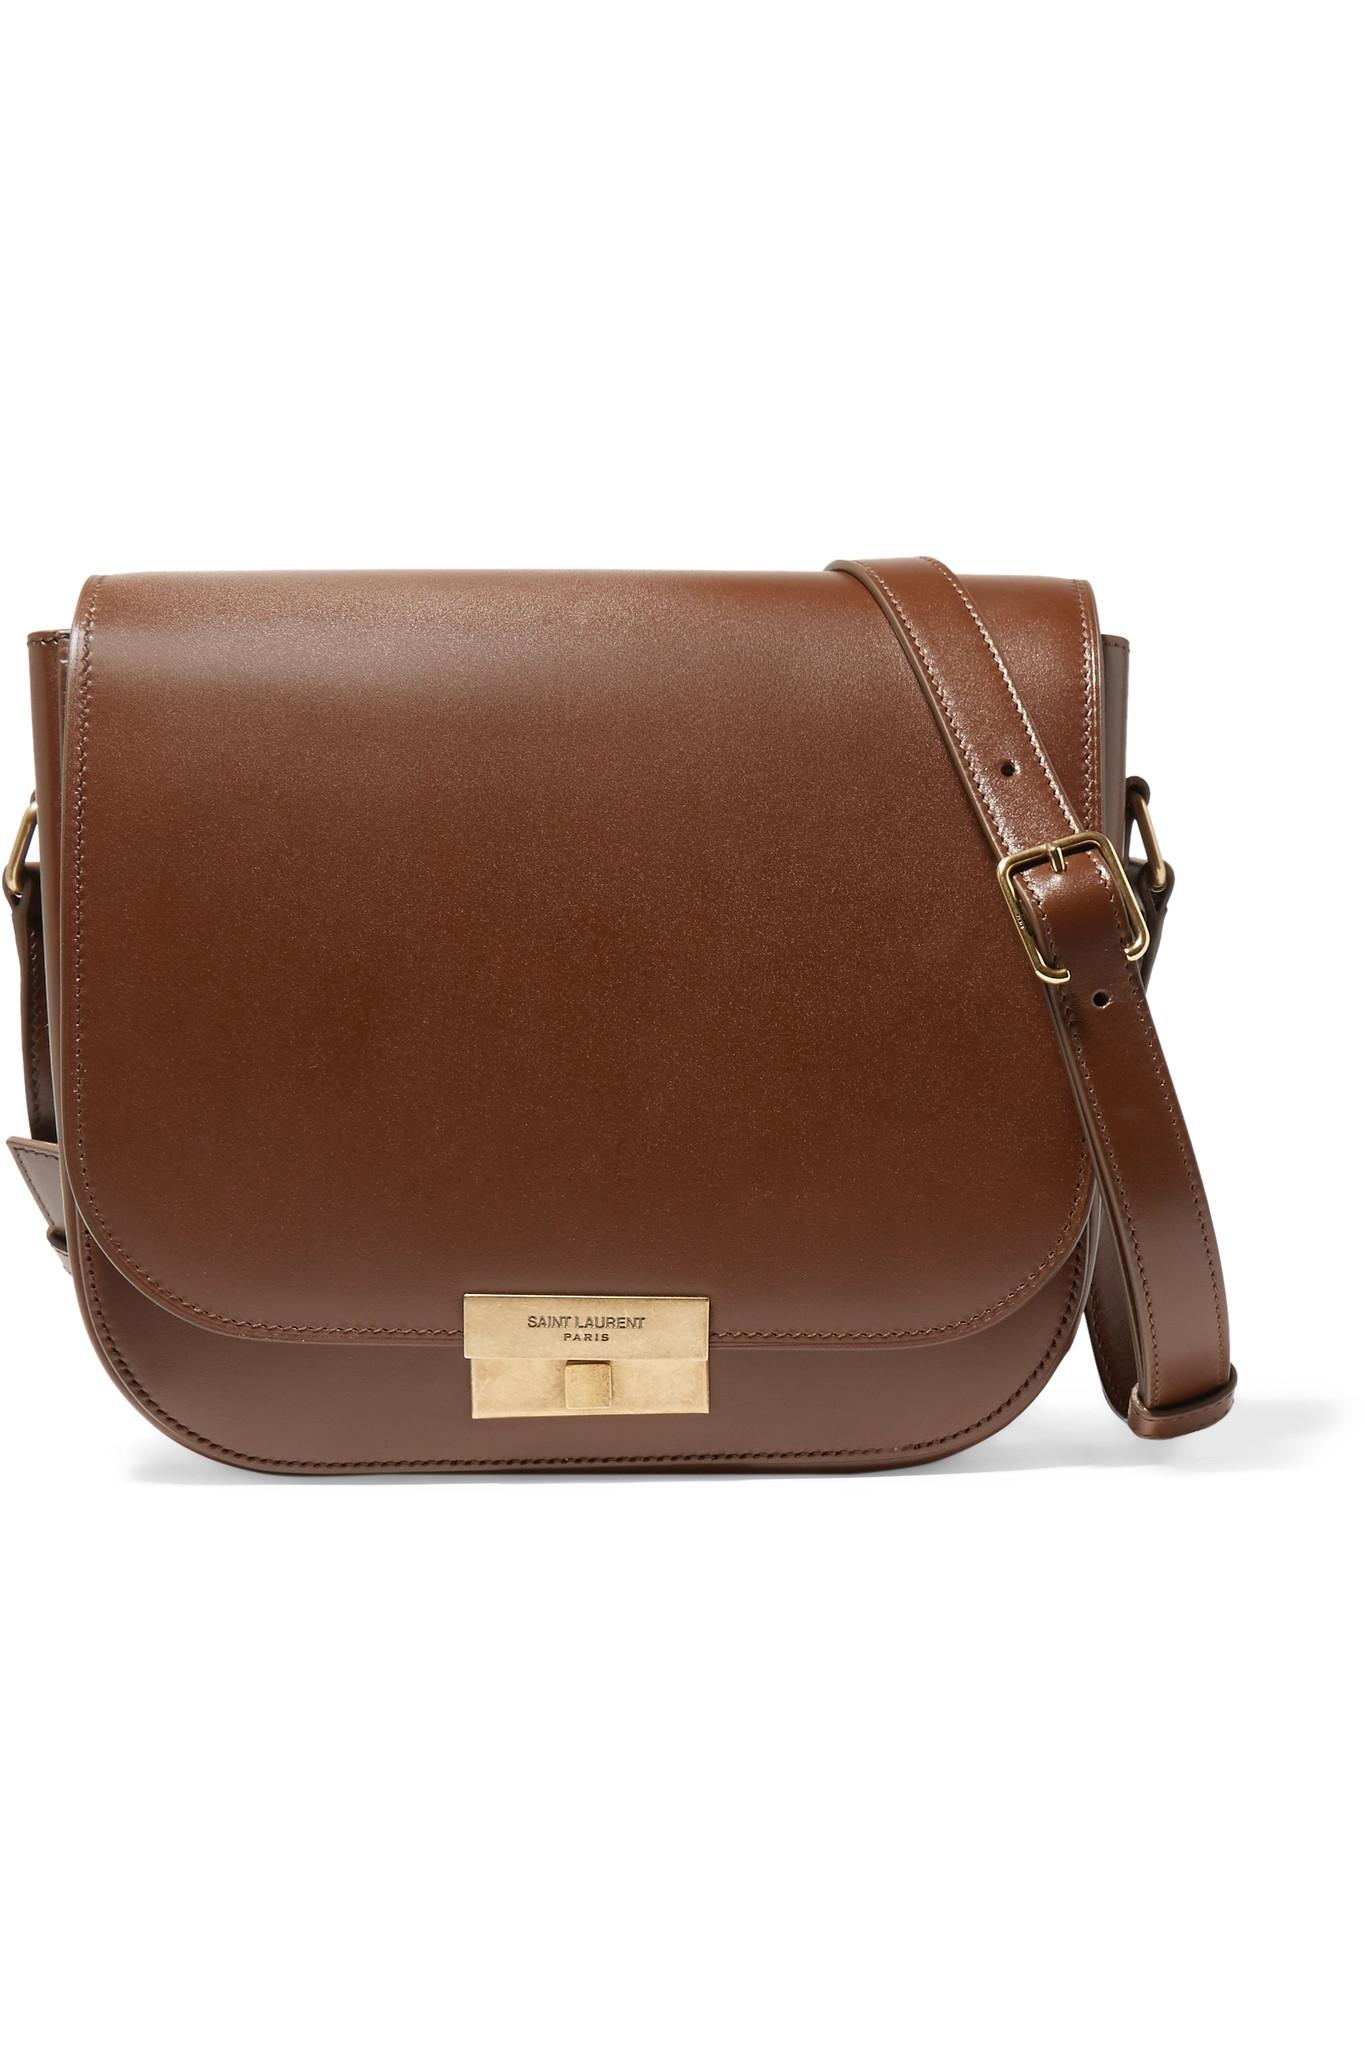 720ec3341f Saint Laurent Betty Leather Shoulder Bag in Brown - Lyst